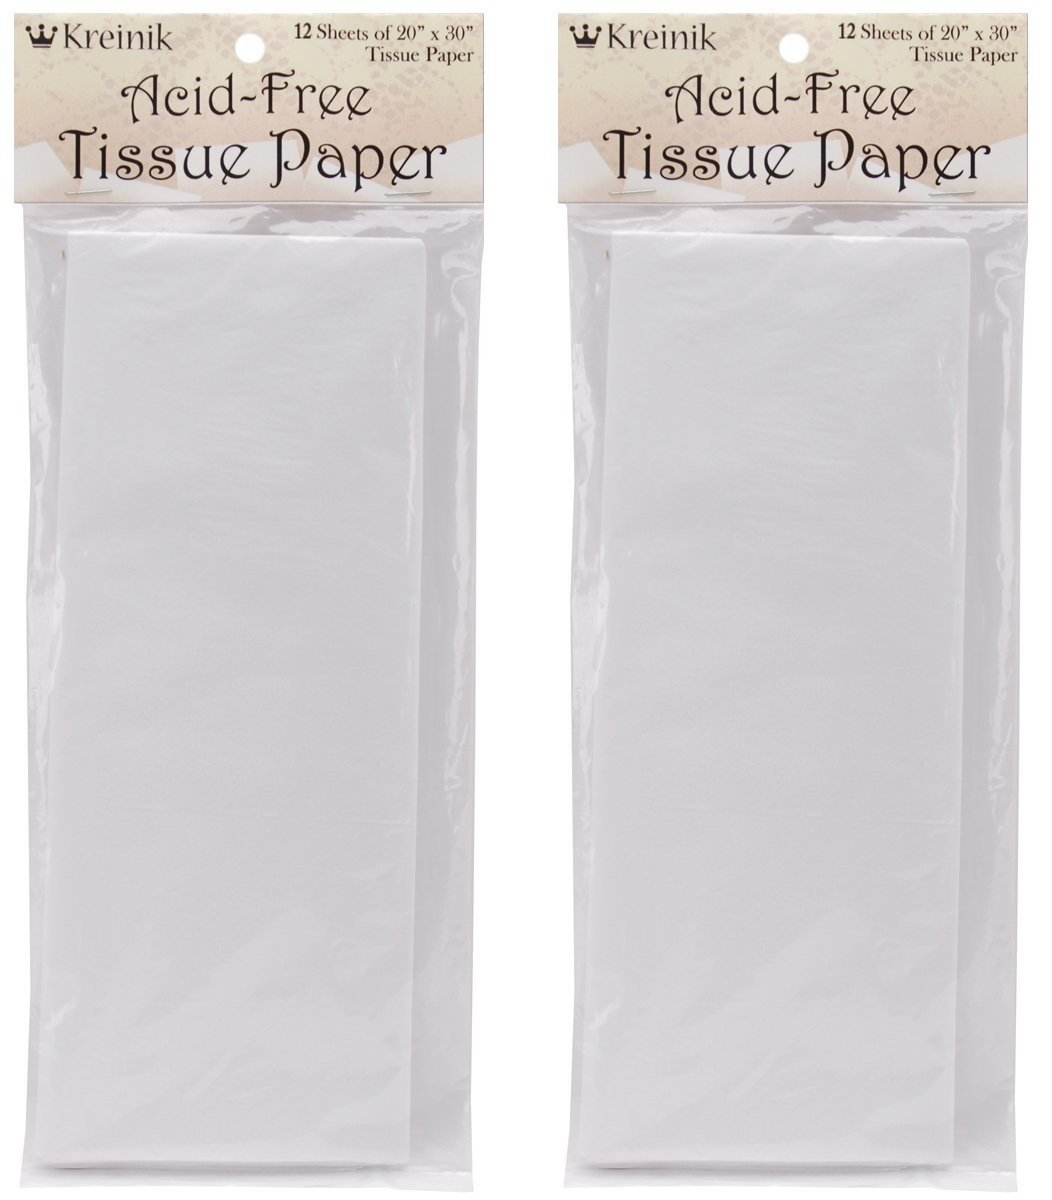 2 Pack Kreinik 12 Sheets of Acid Free Tissue Paper 20 by 30-Inch